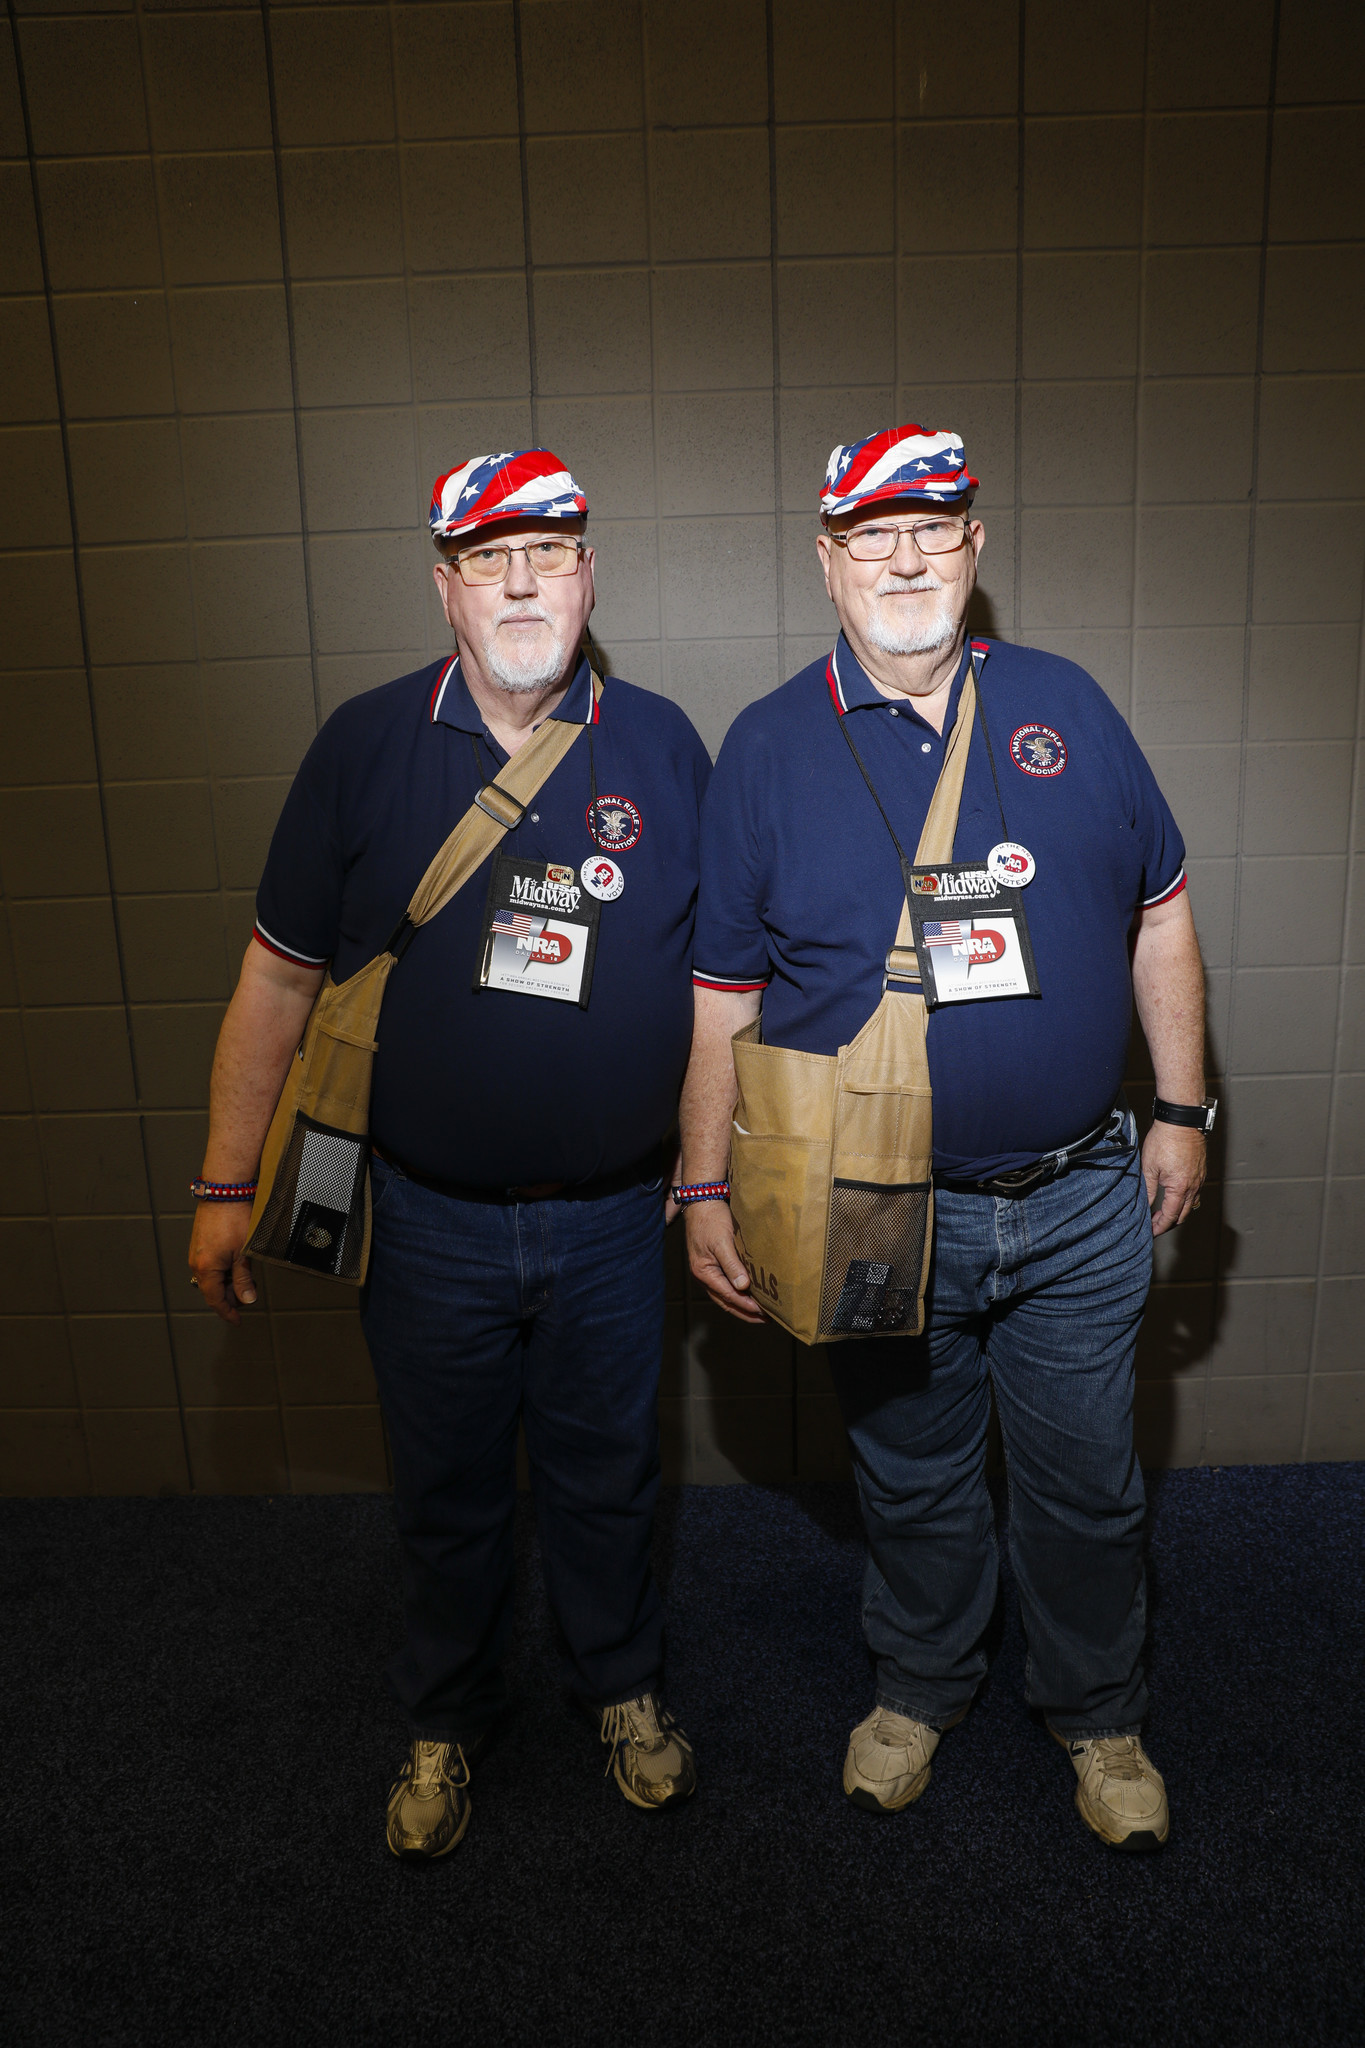 Twins Jerry Gooldin, left, and John Gooldin